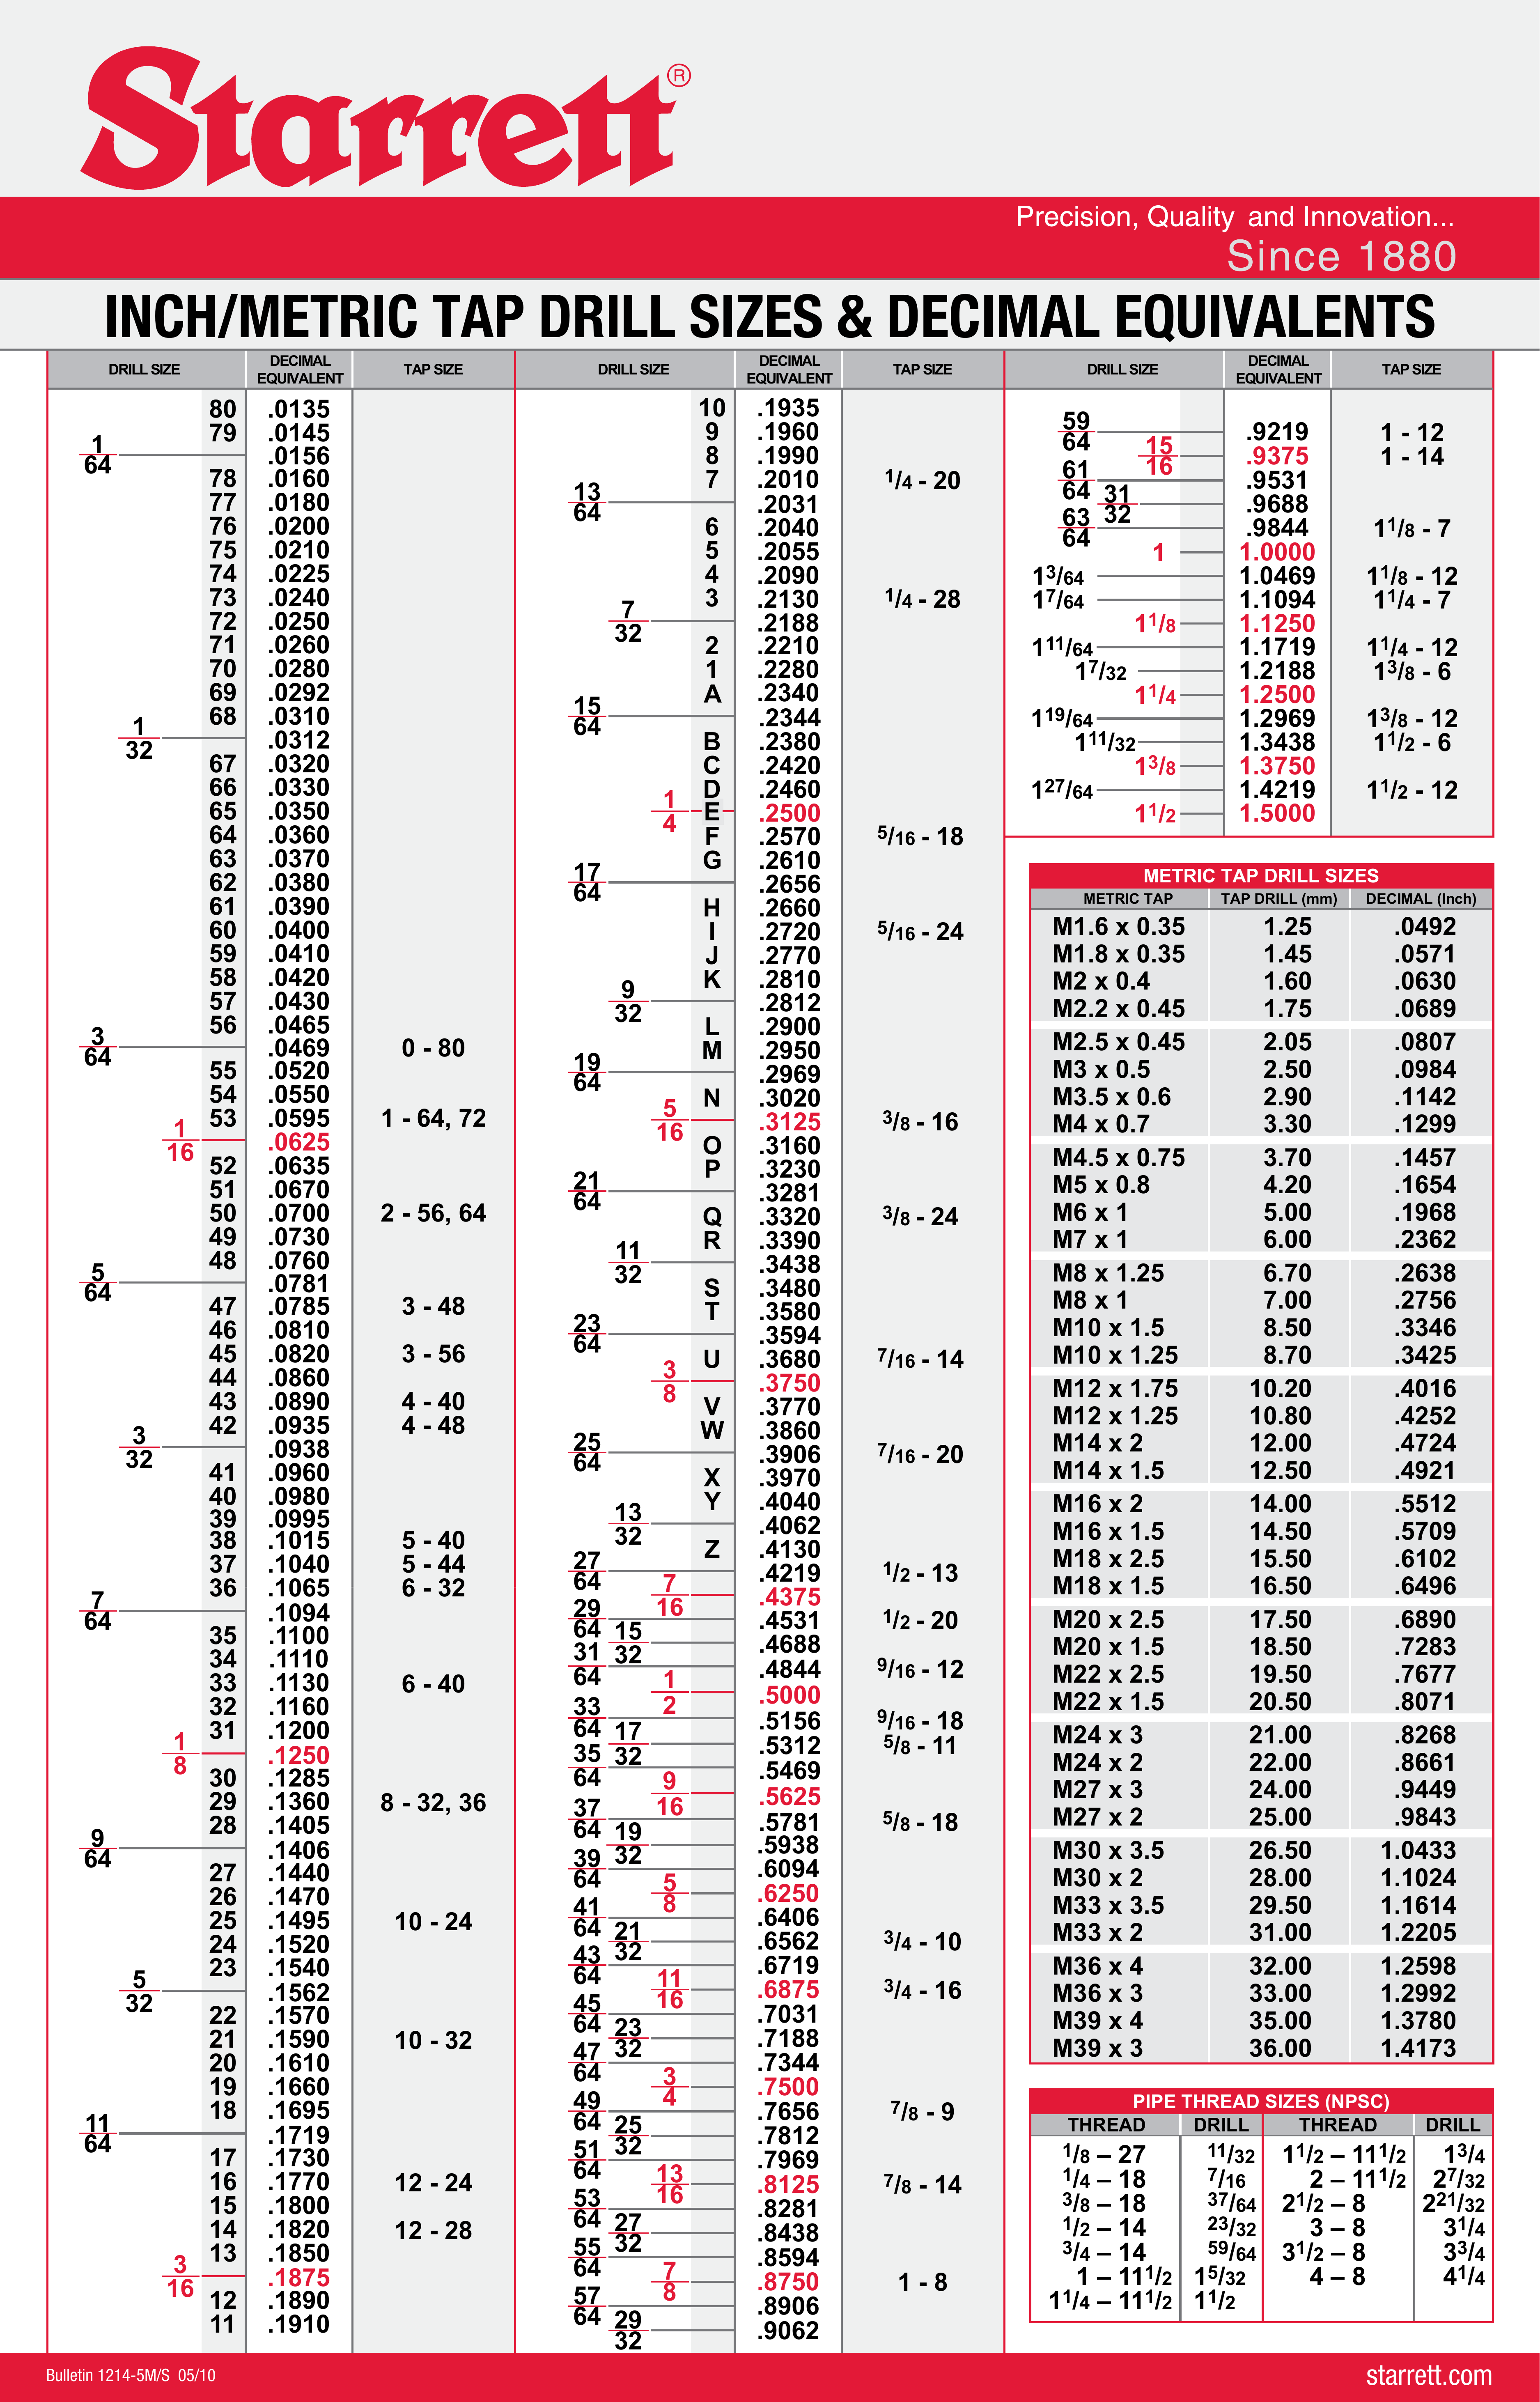 decimal equivalence chart with all the bells and whistles : machinists